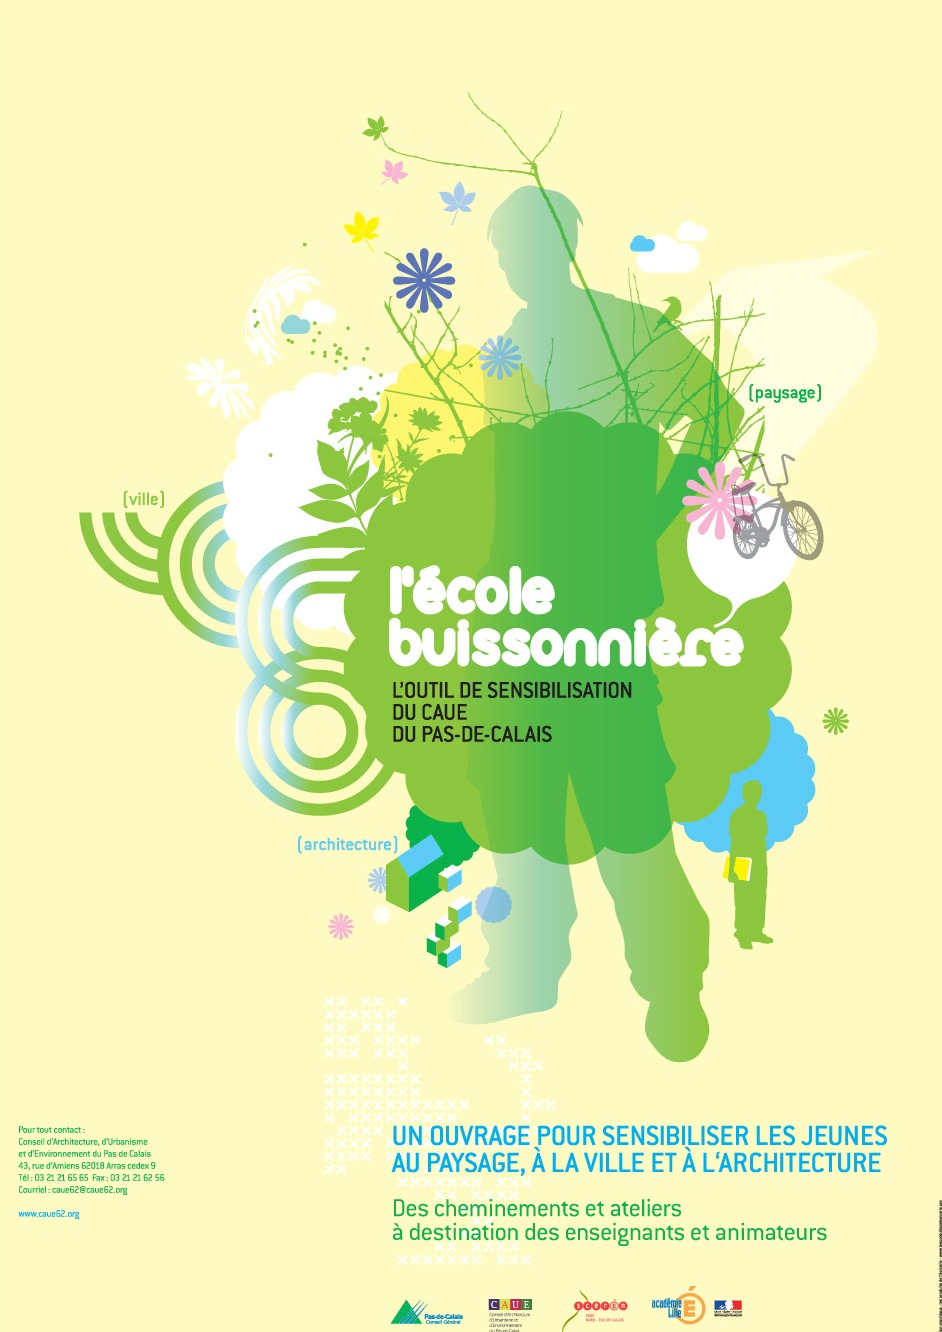 ecole-buissonniere